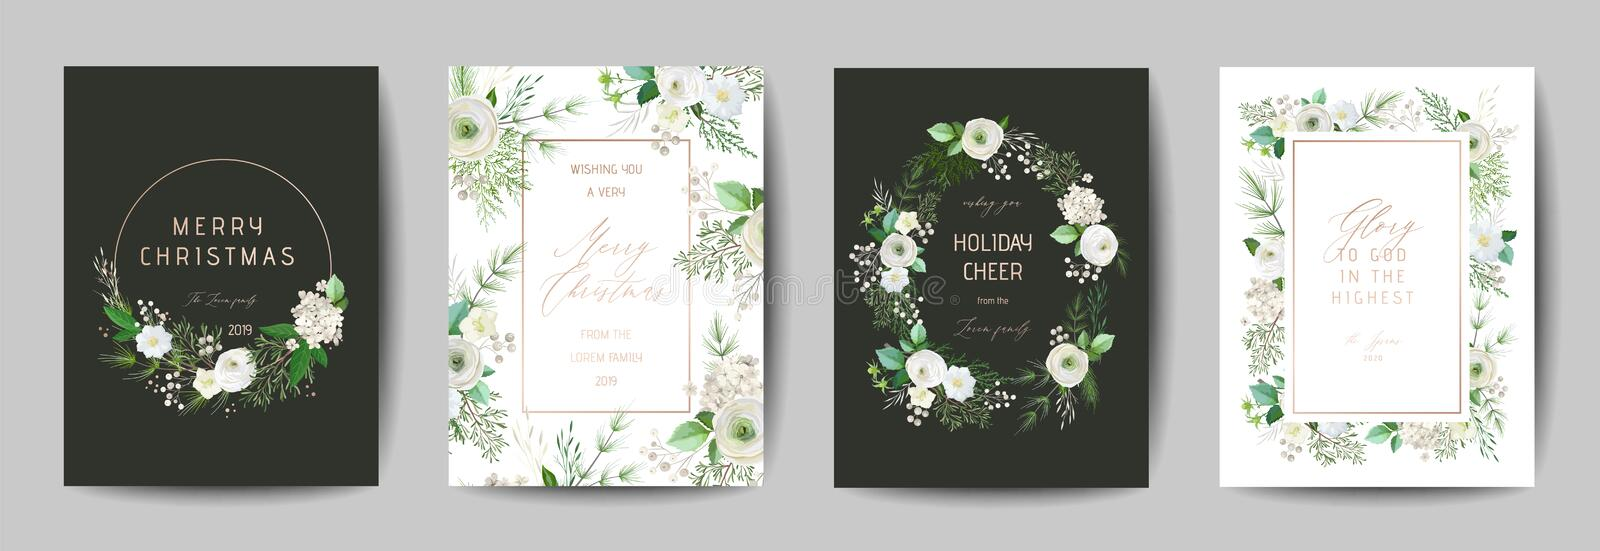 Elegant Merry Christmas and New Year 2020 Card with Pine Wreath, Mistletoe, Winter Plant design for greetings ilustracji